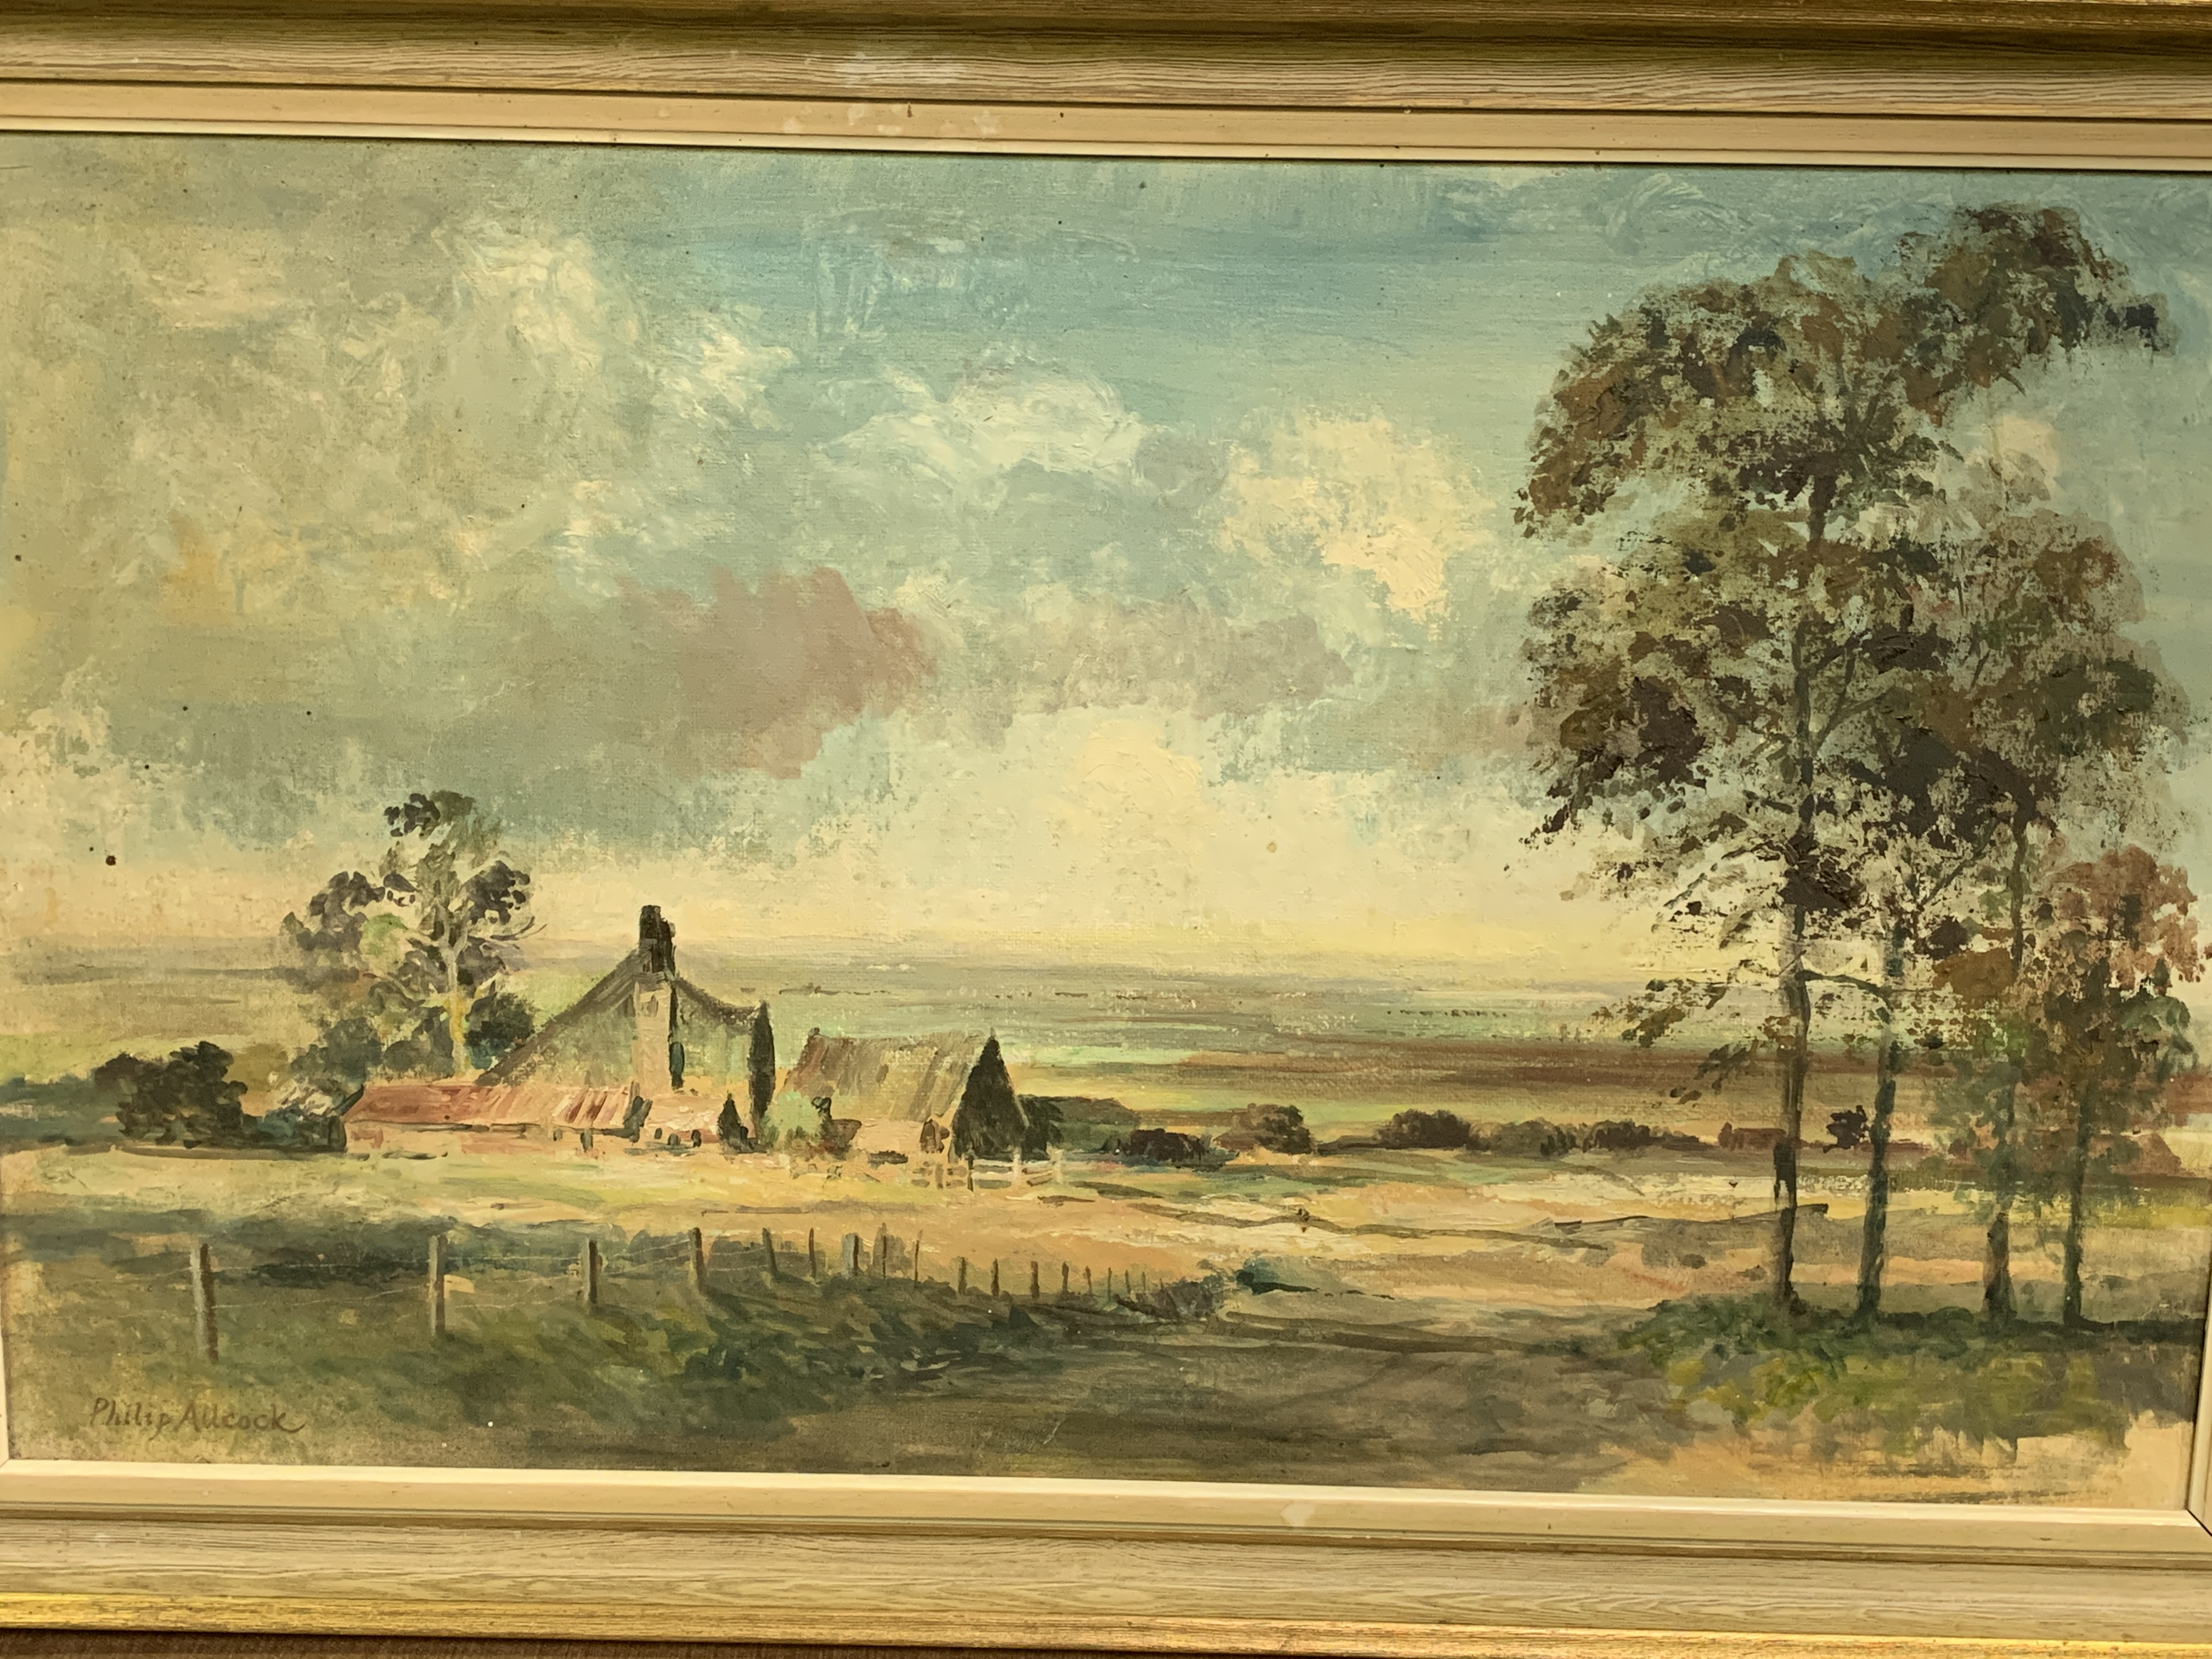 Framed oil on board of a landscape with a farmhouse, signed bottom left Philip Allcock - Image 4 of 5